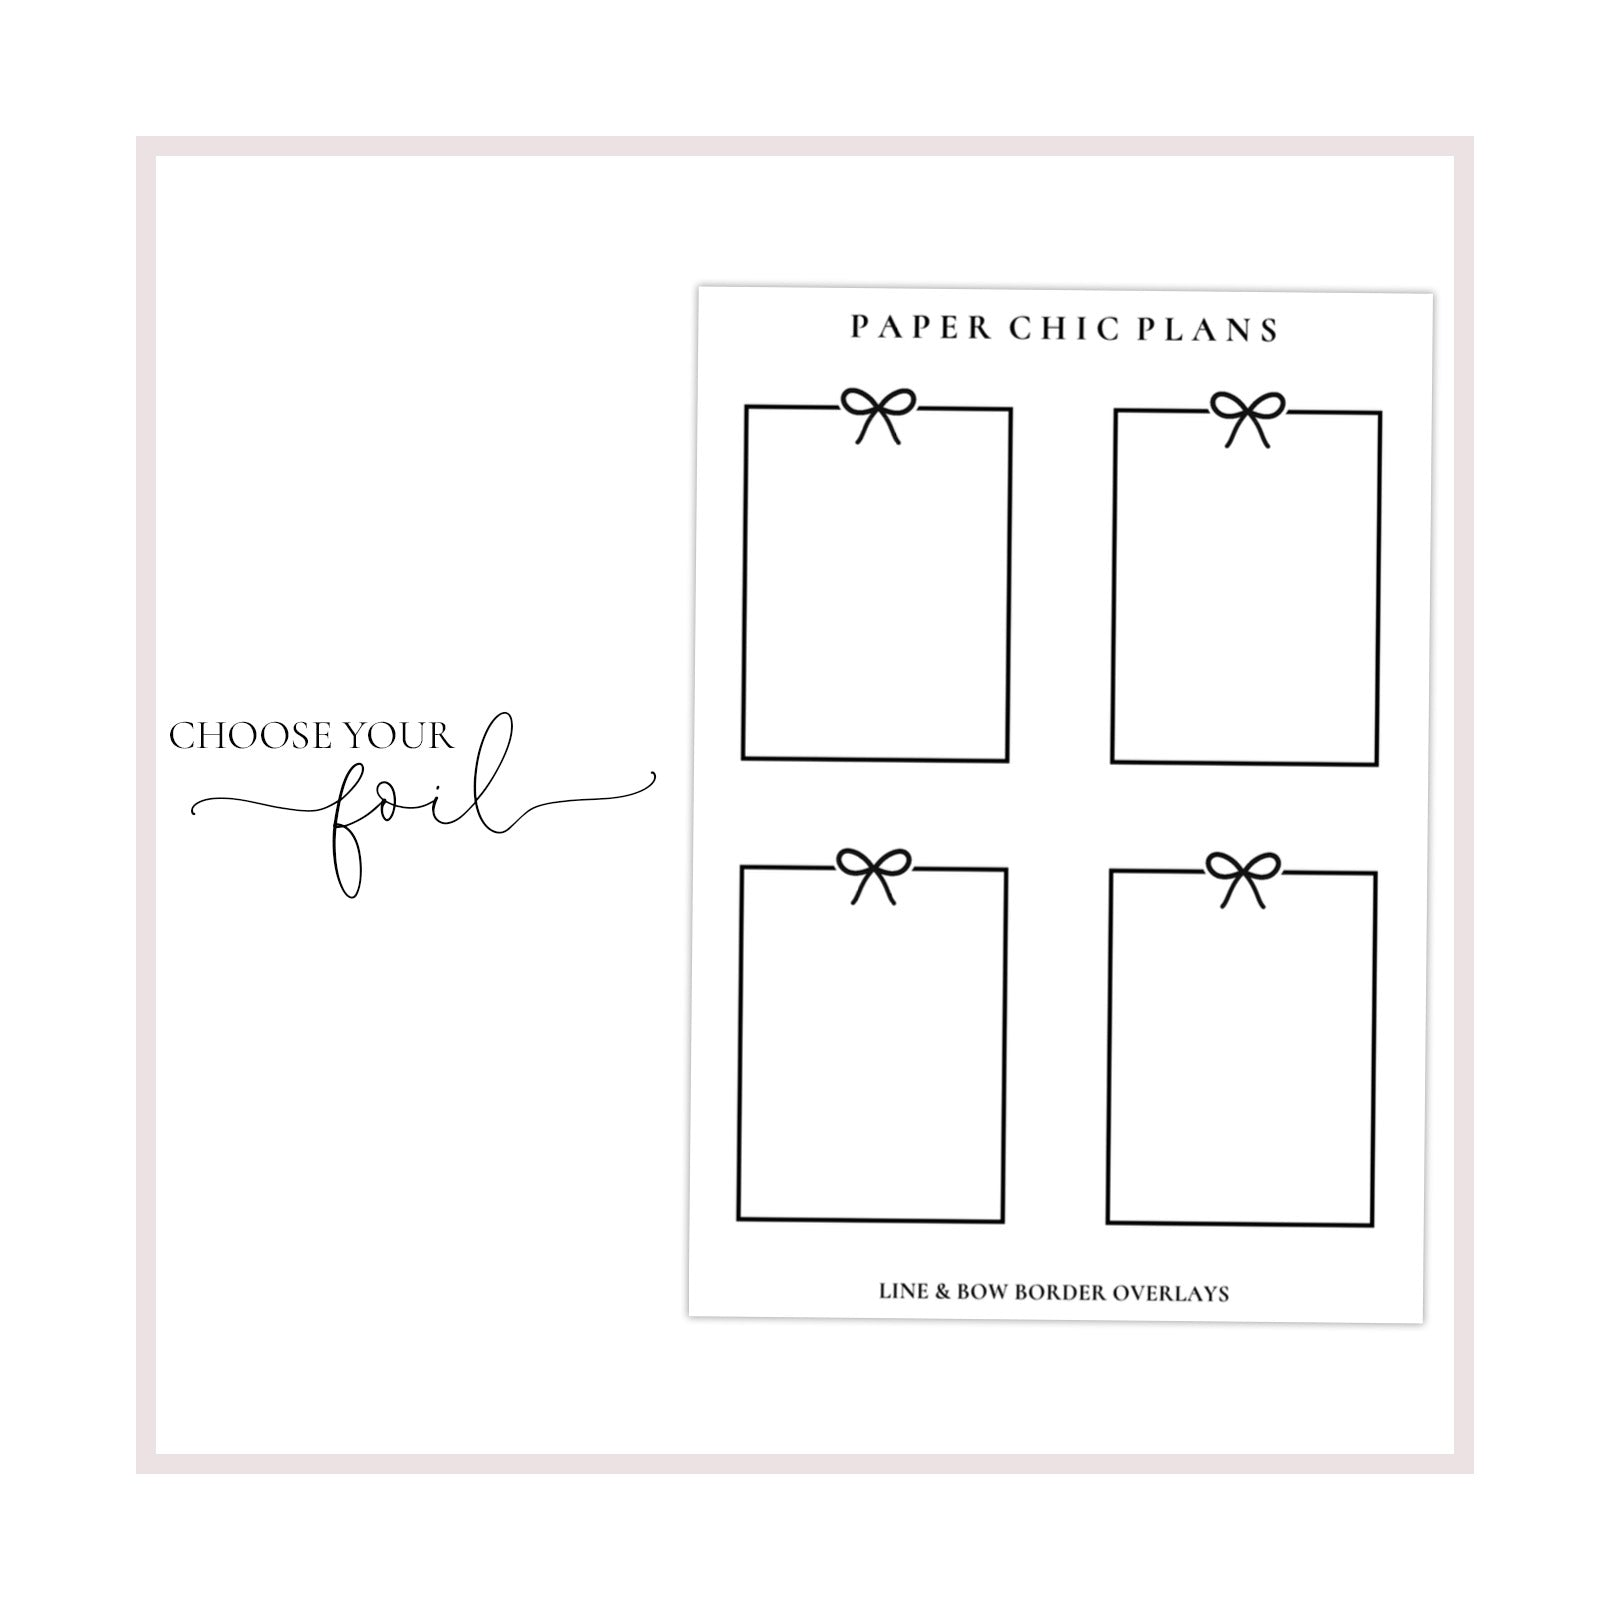 Line & Bow Full Box Overlays // Foiled - Paper Chic Plans